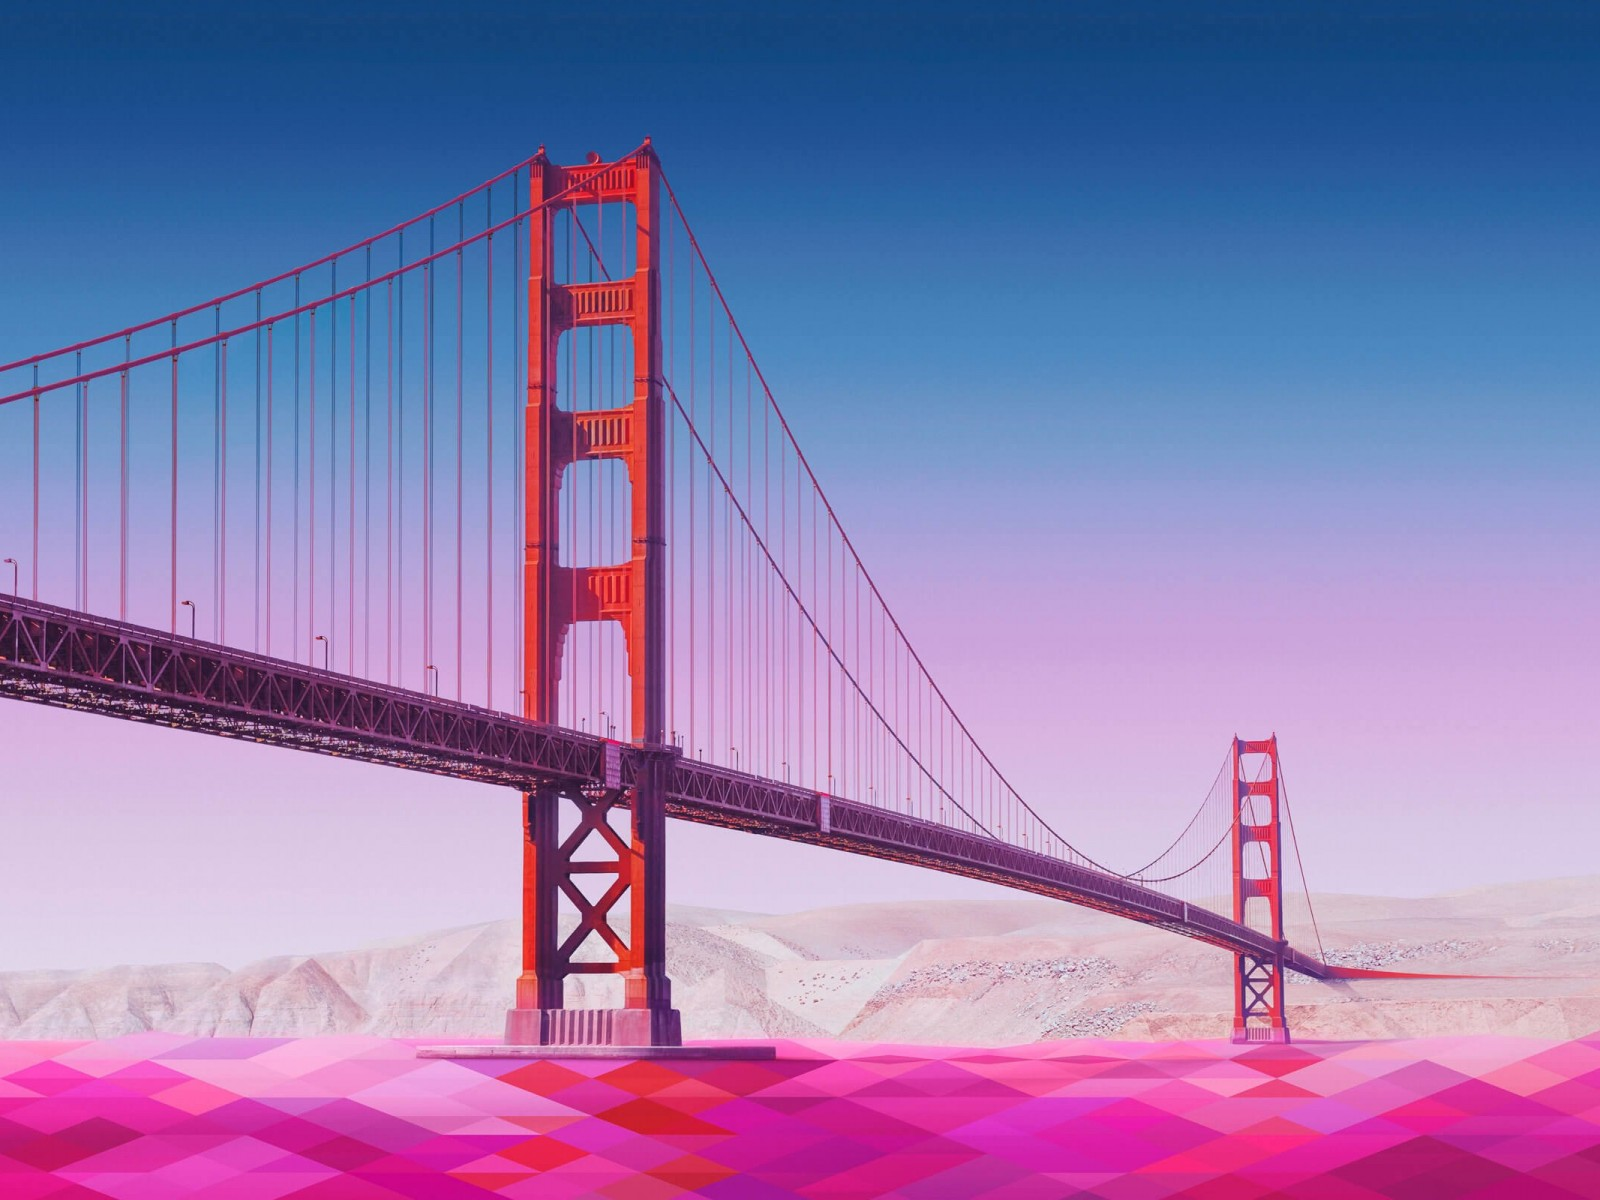 Geometric Golden Gate Bridge Wallpaper for Desktop 1600x1200